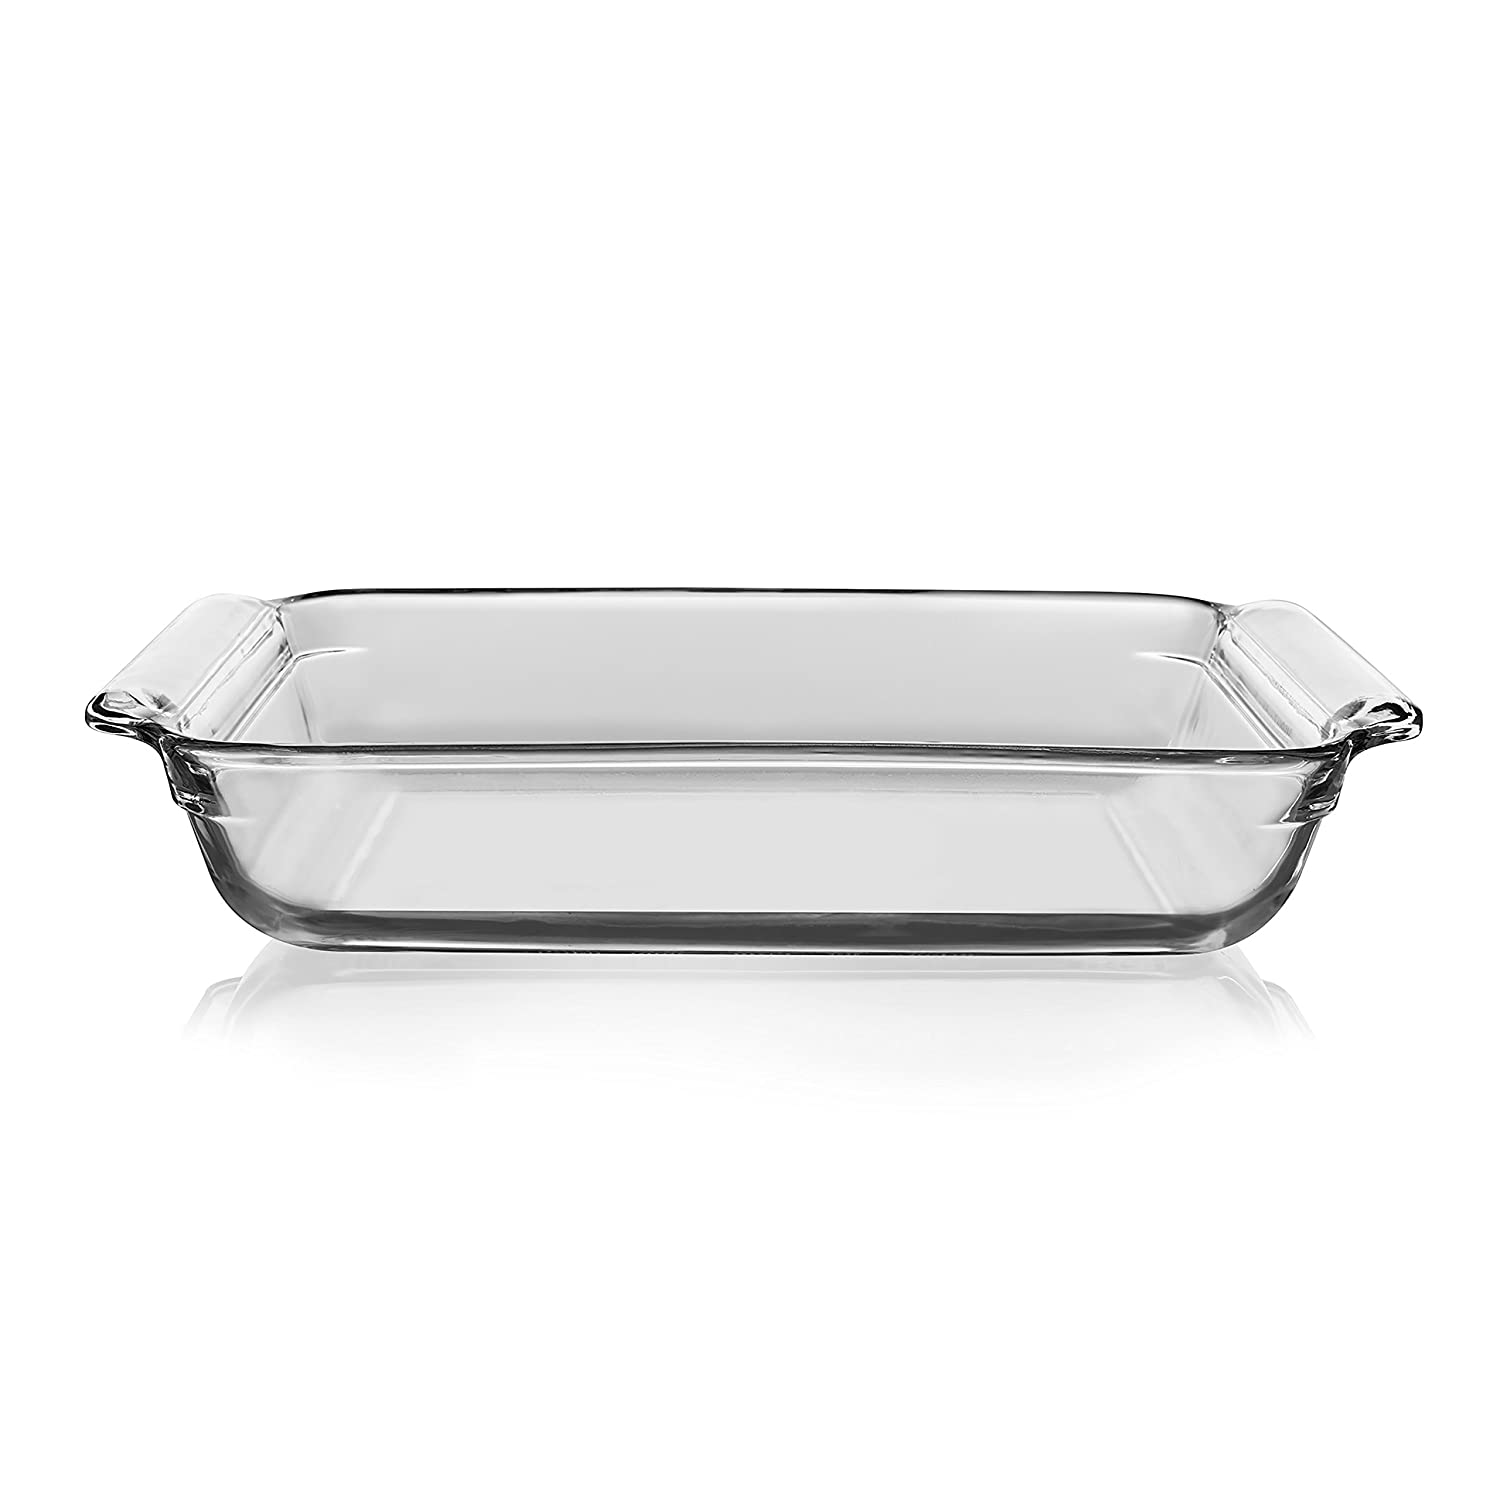 Amazon.com: Libbey Bakers Basics Glass Casserole Baking Dish, 9-inch by 13-inch: Kitchen & Dining